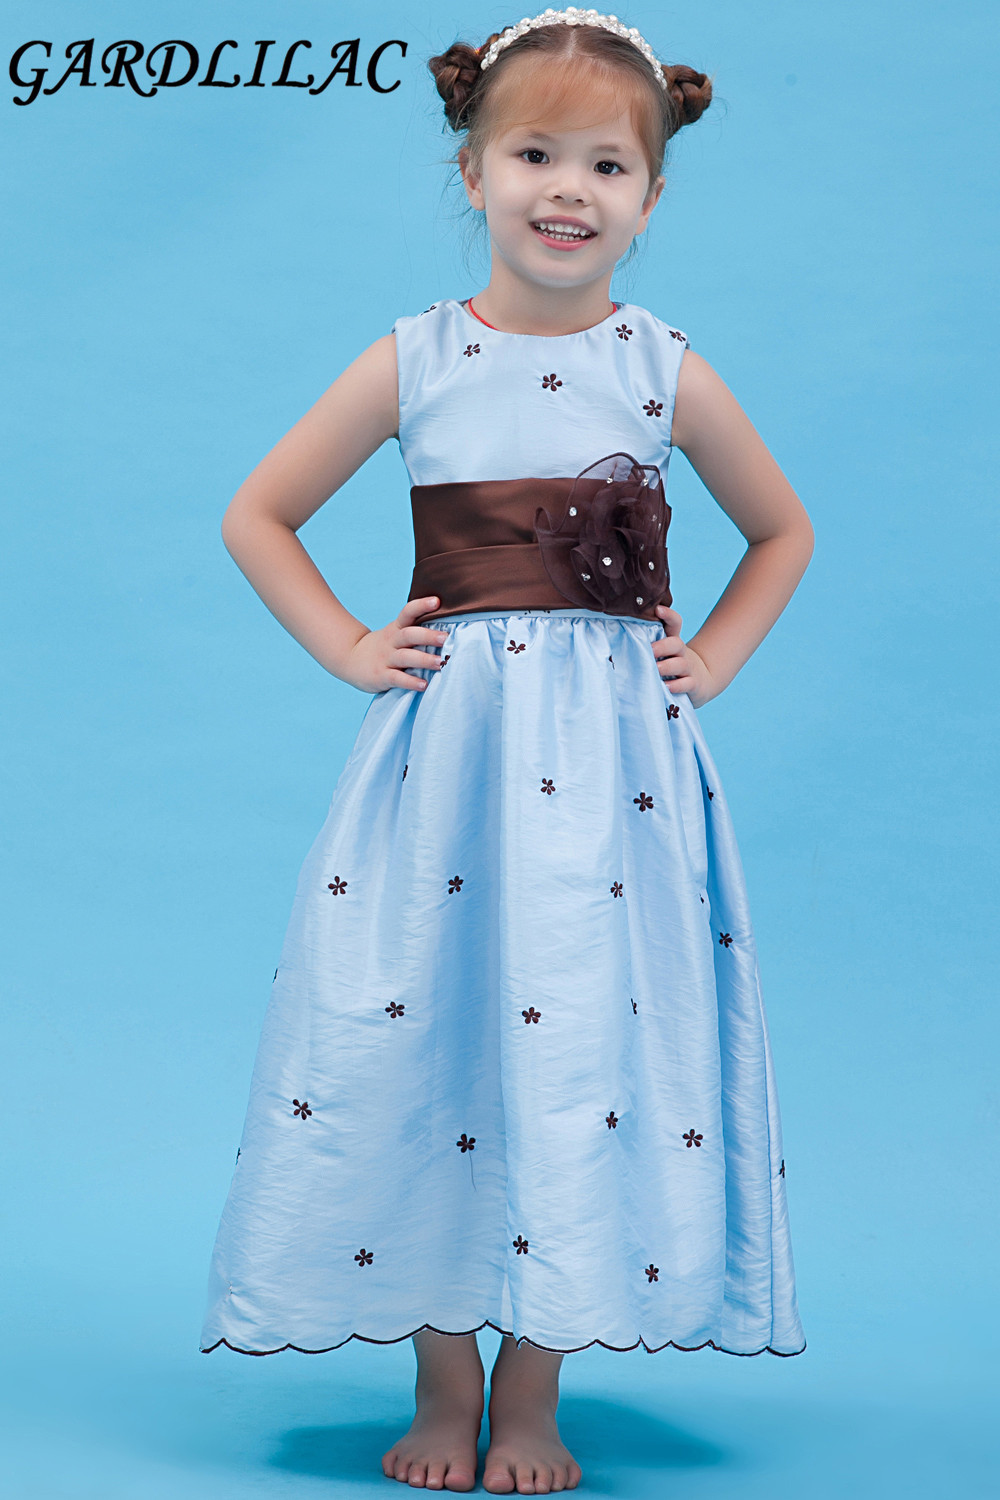 2017 stain sleeveless light blue long flower girl dress with flower 2017 stain sleeveless light blue long flower girl dress with flower black appliques sashes robe de soiree enfant fille izmirmasajfo